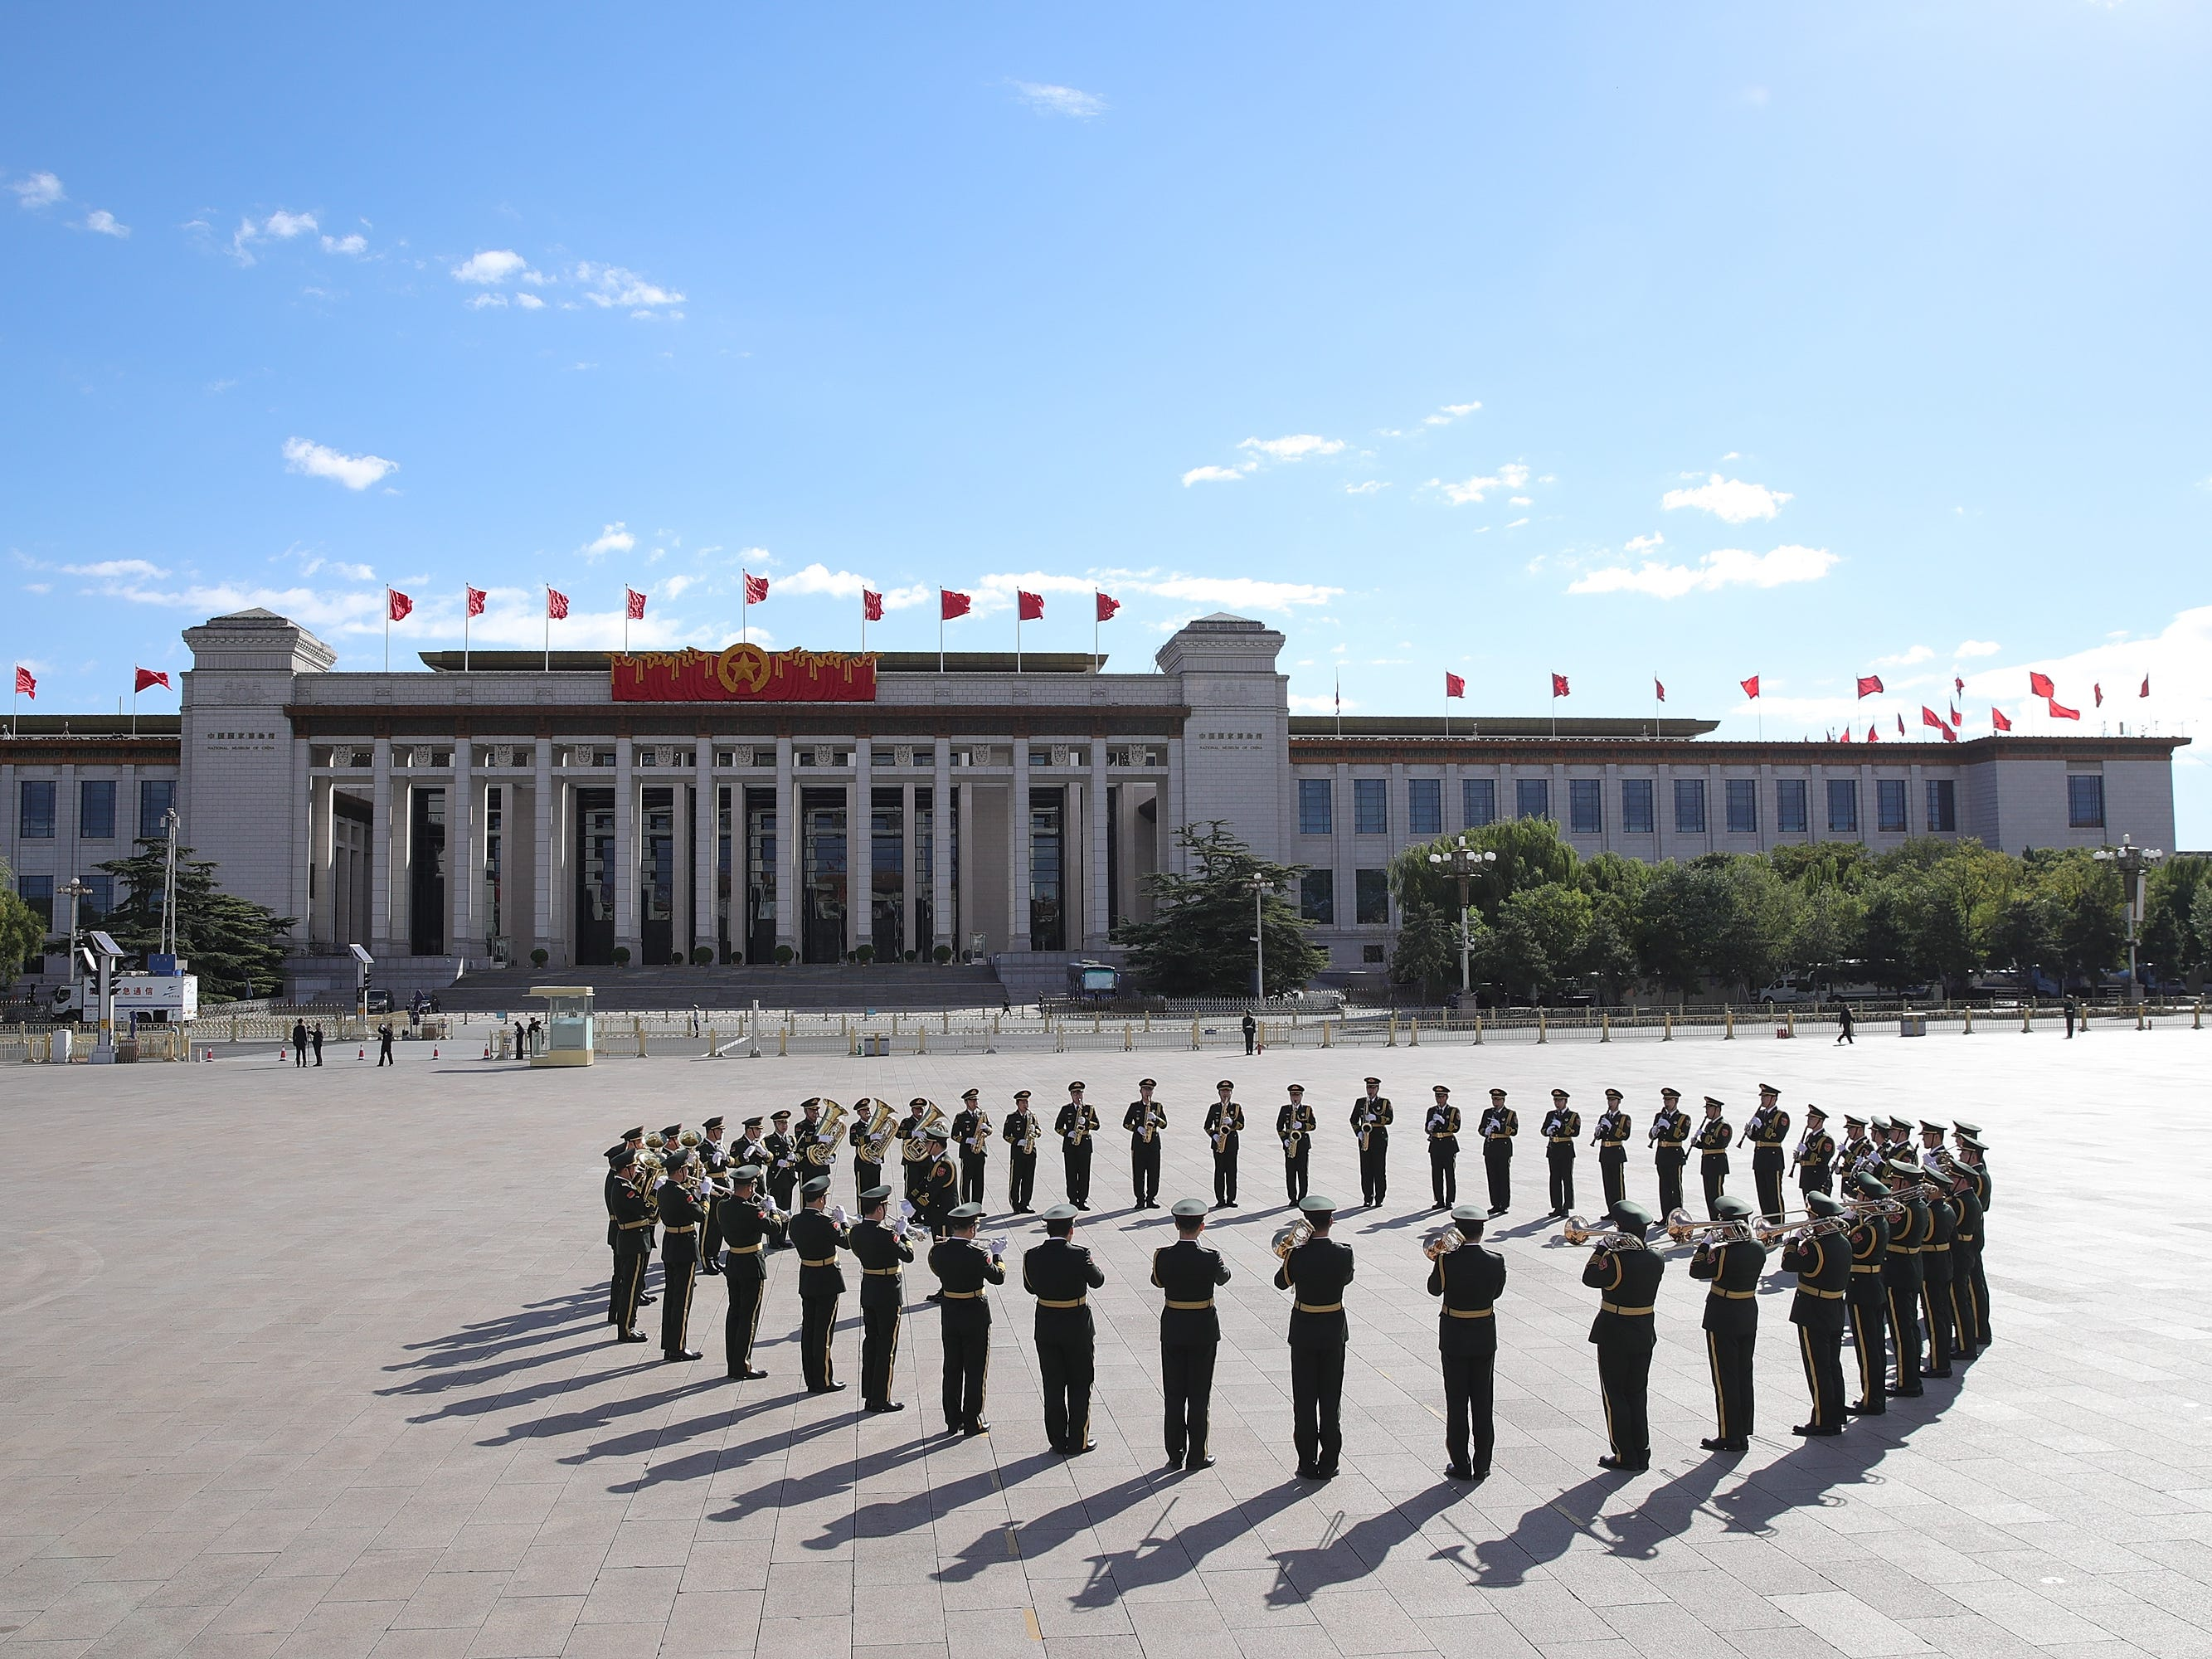 A military band rehearses before a ceremony at Tiananmen Square, on the eve of National Day on Sept. 30, 2018 in Beijing. On Oct. 1, 1949, Chinese leader Mao Zedong stood at the Tiananmen Rostrum to declare the founding of the People's Republic of China.